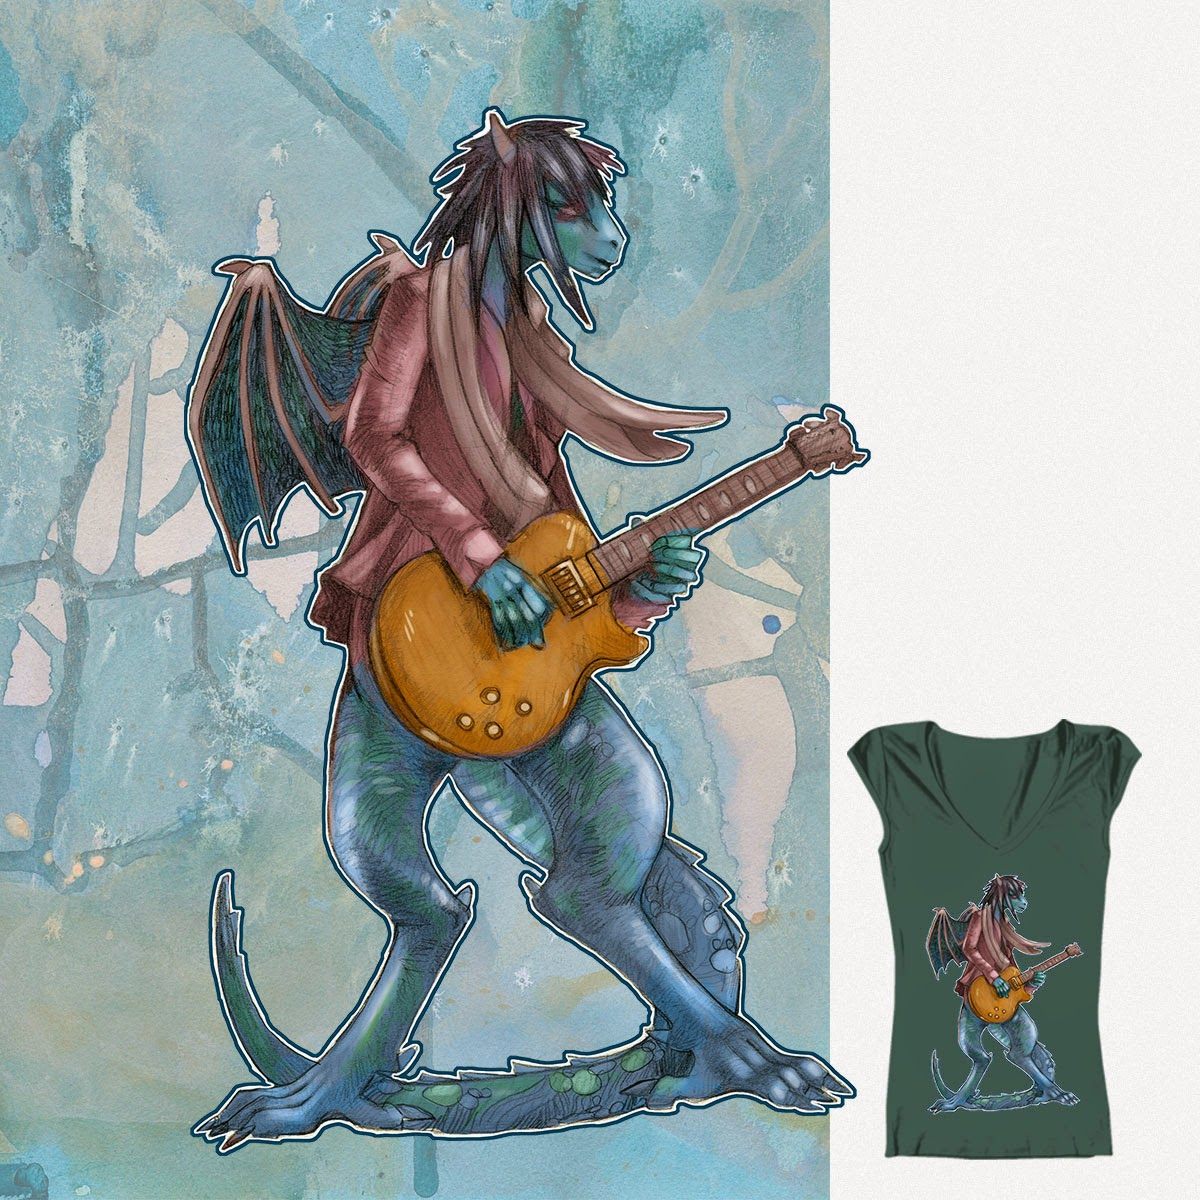 https://www.threadless.com/designs/guitar-dragon